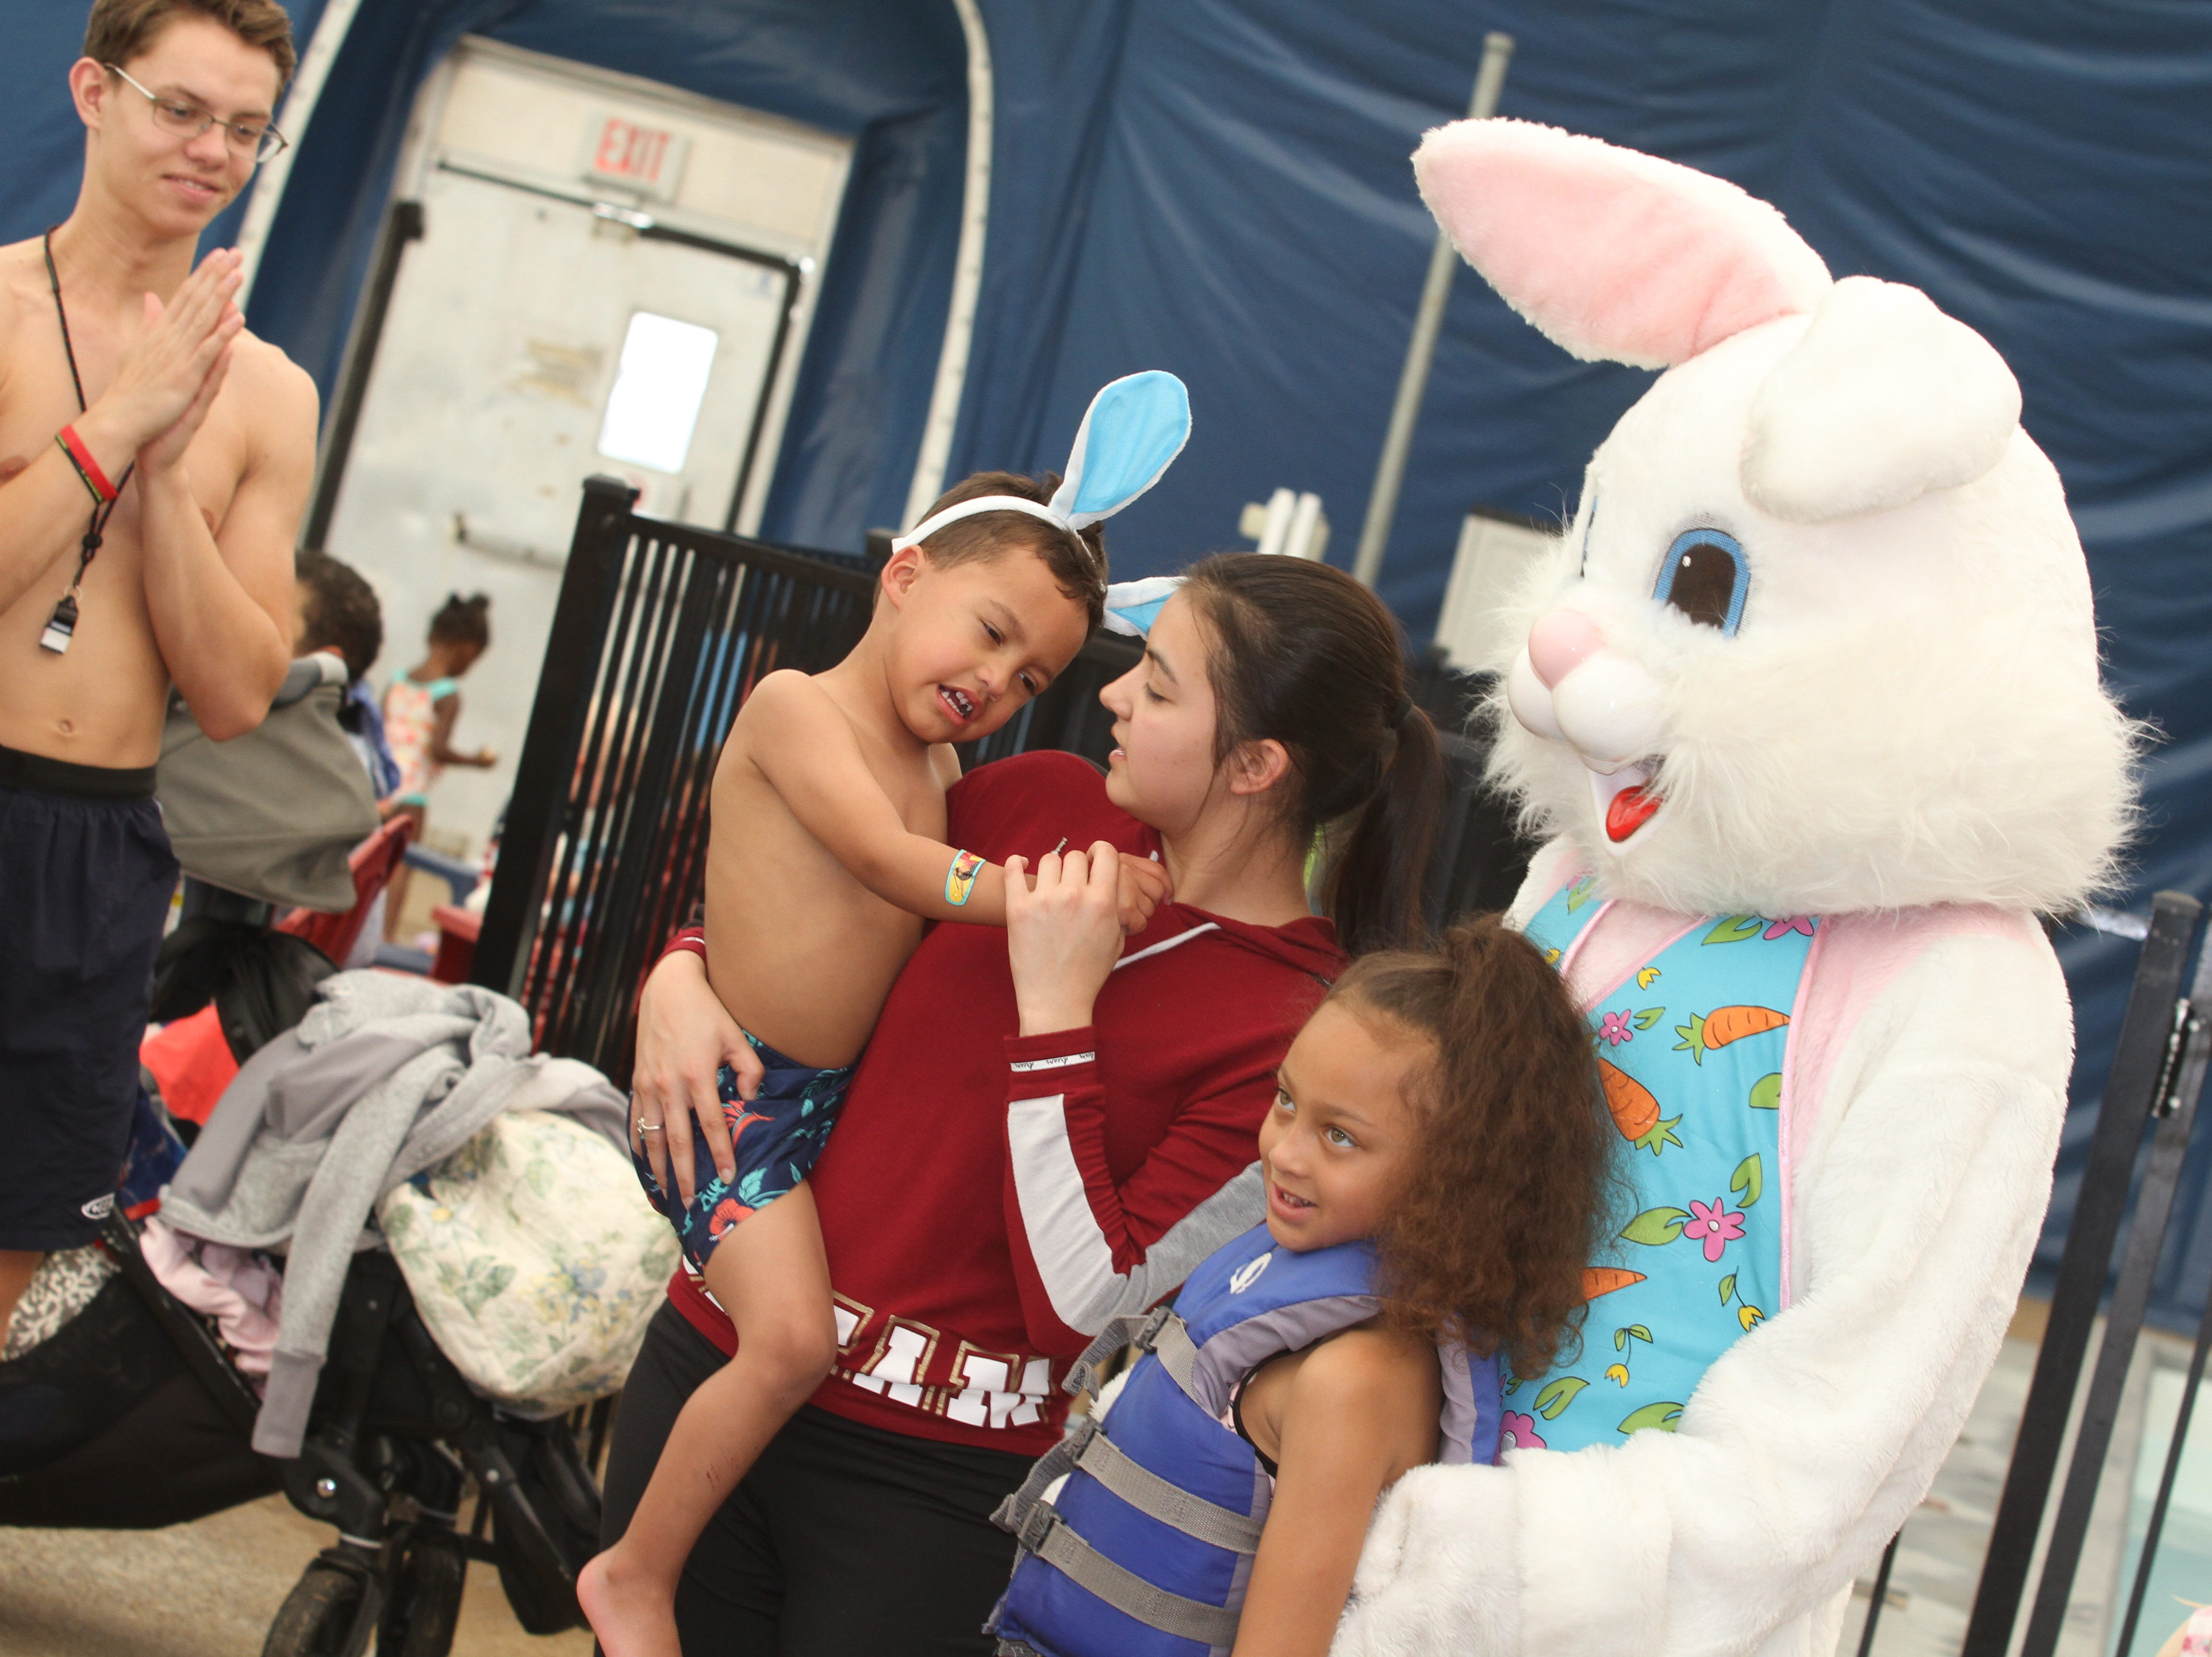 The Easter Bunny  makes friends at the Wettest Egg Hunt at the New Providence Aquatic Center on Saturday, April 13, 2019.